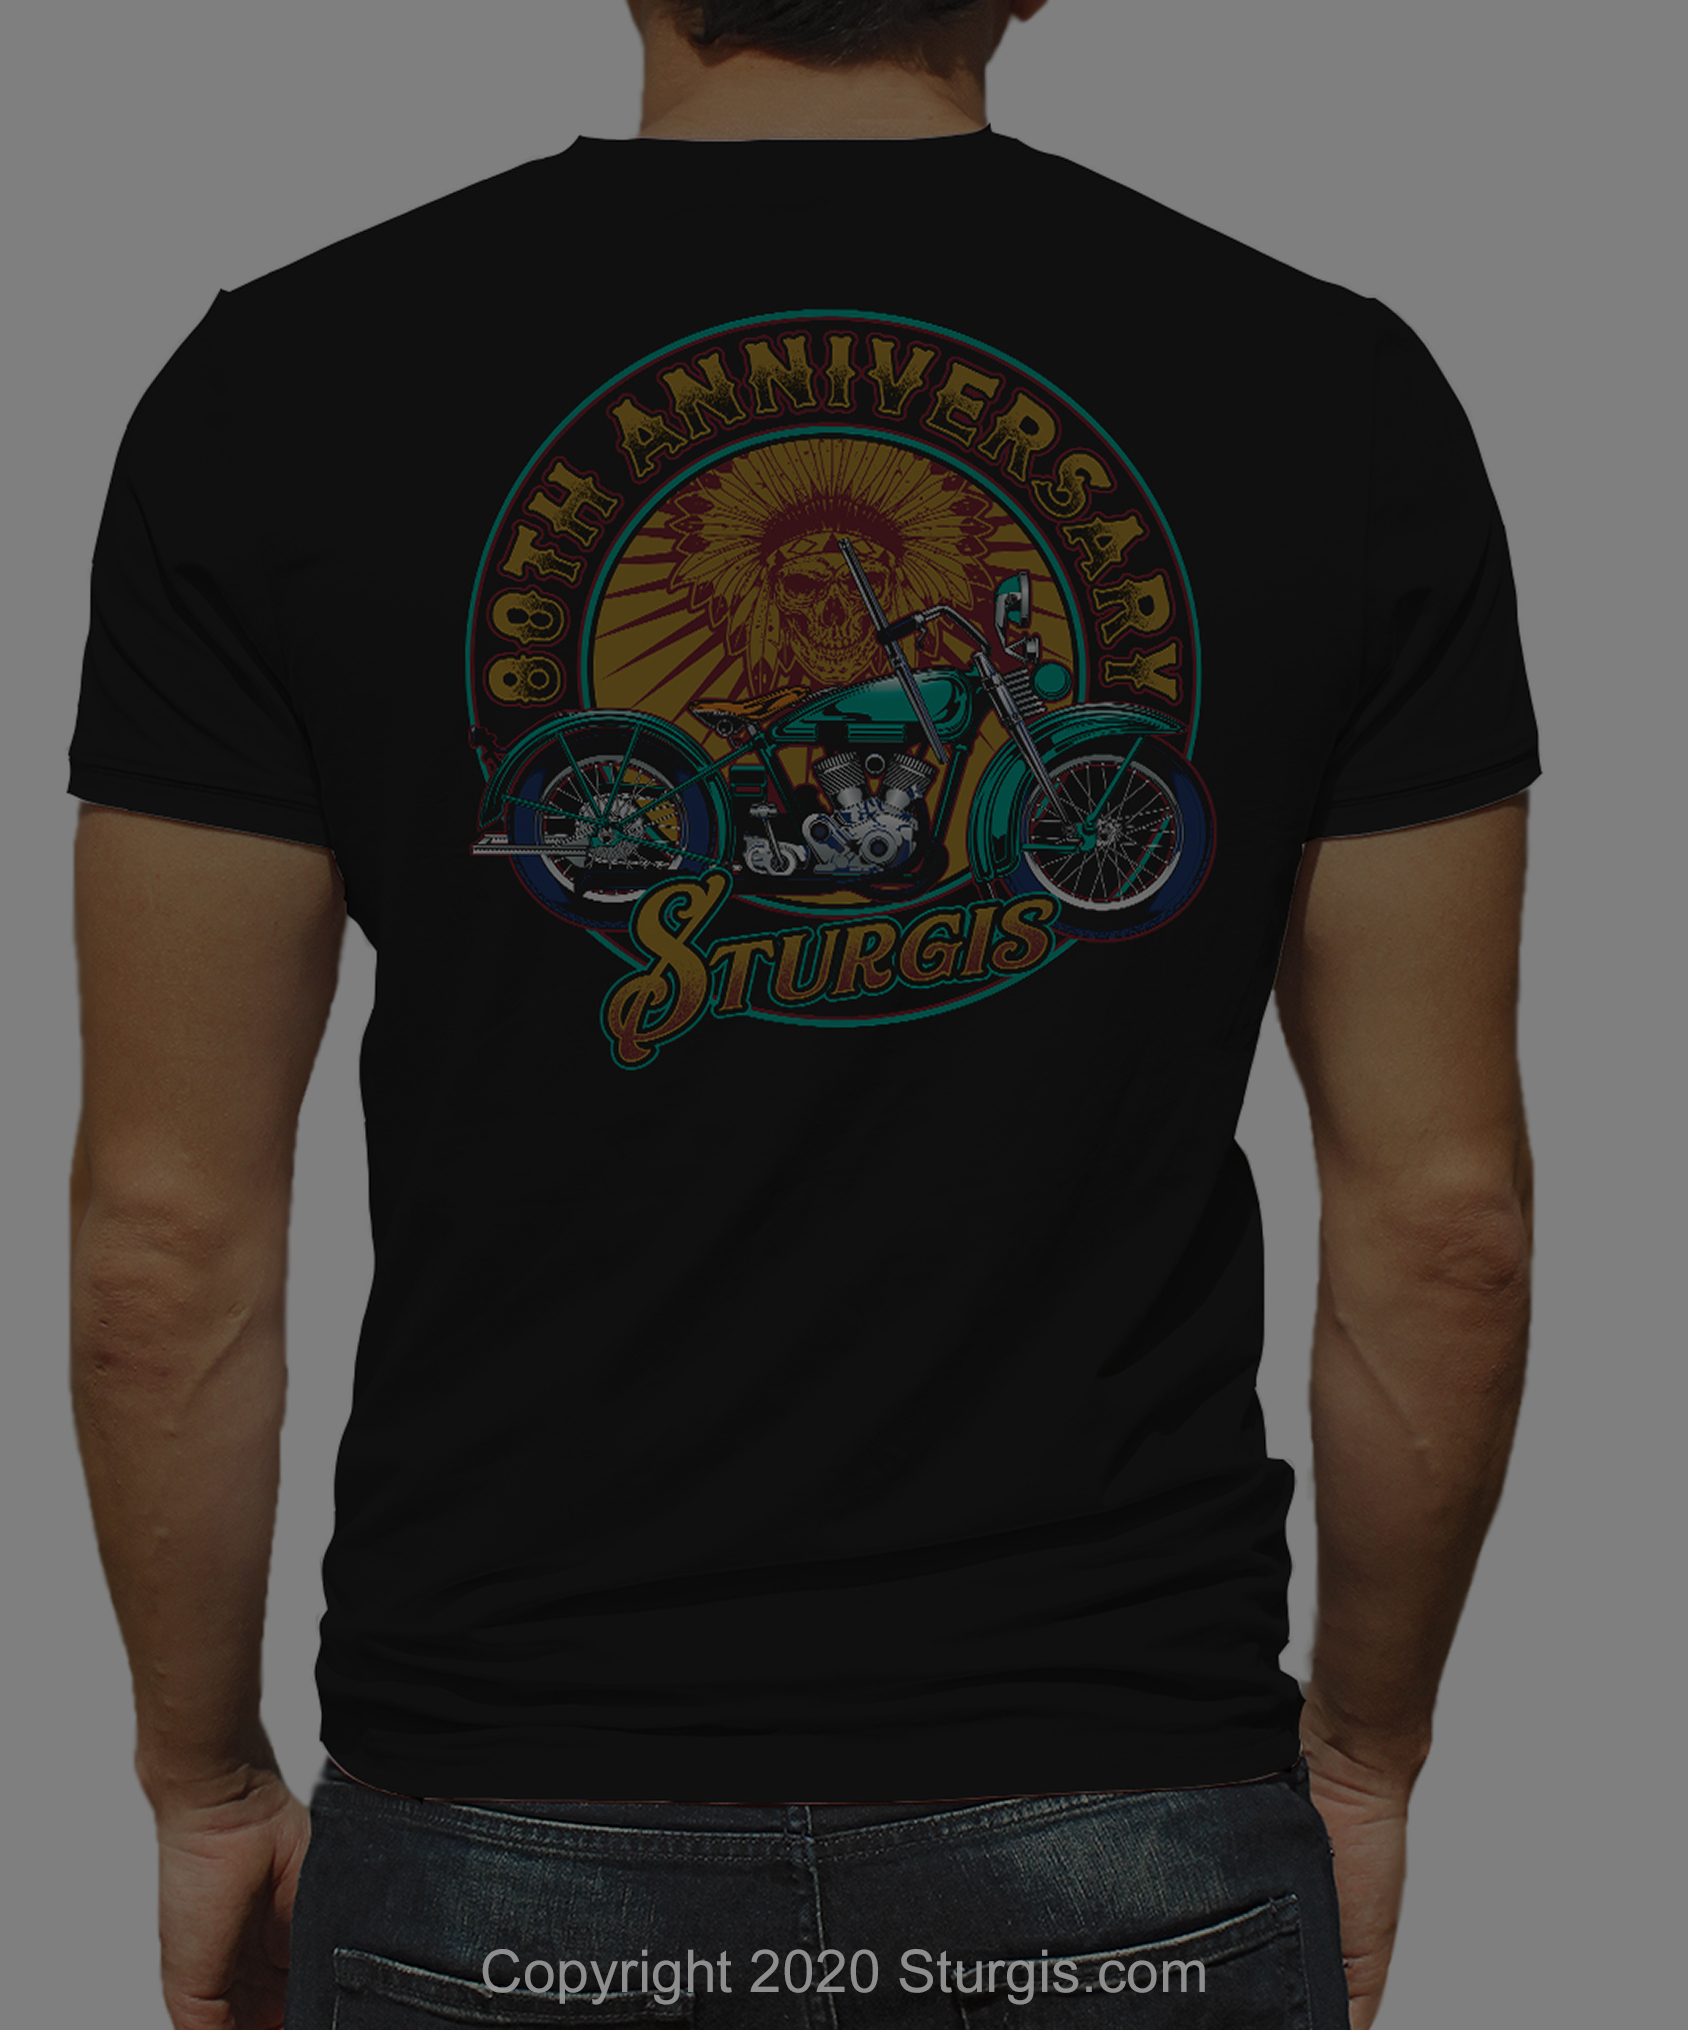 Sturgis Rally Shirts & Accessories